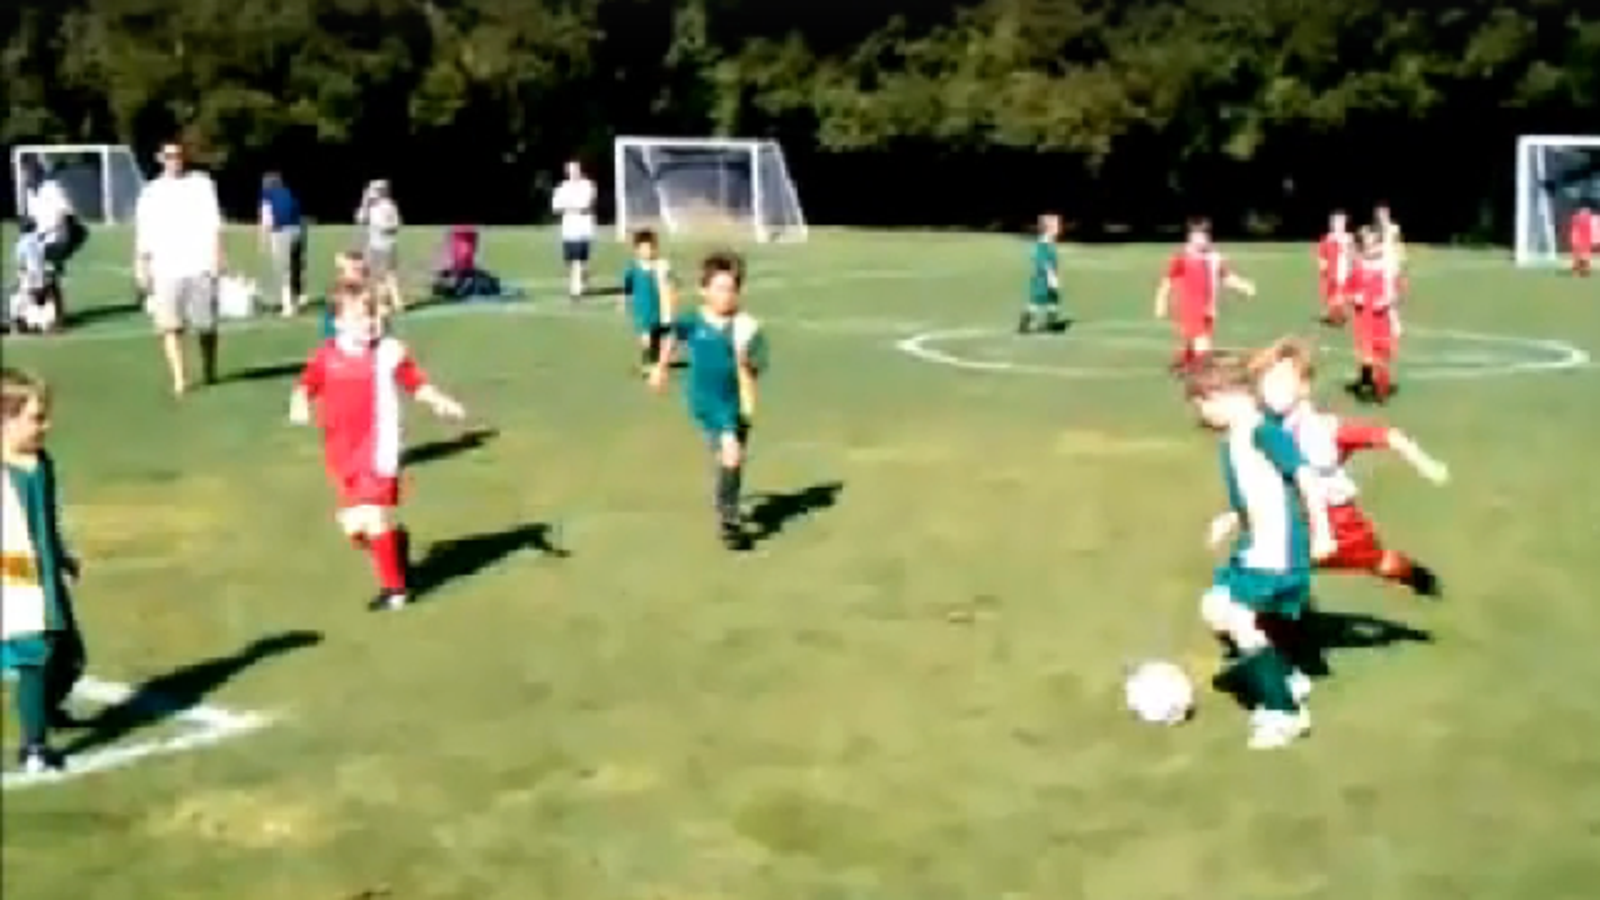 Watch A Kid Get Punched In The Face During A Soccer Game In Ohio